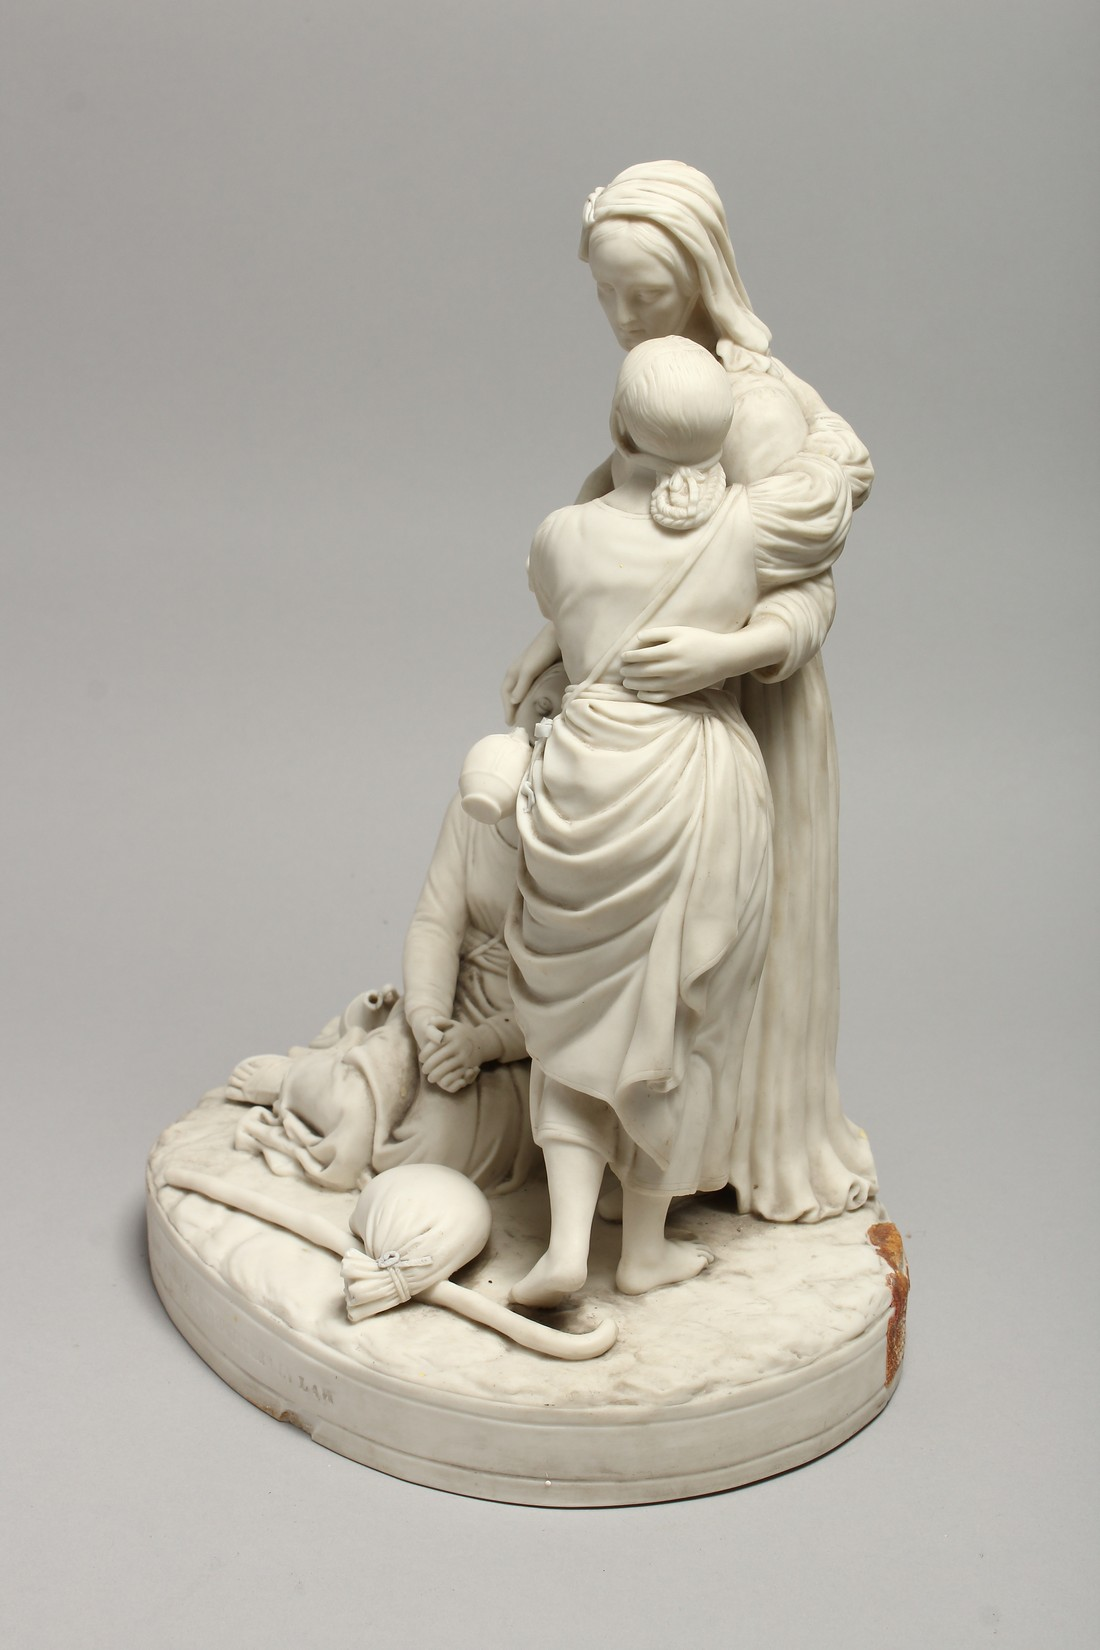 """A LATE 19TH CENTURY PARIAN WARE GROUP """"NAOMI AND HER DAUGHTER IN LAW"""". 13 ins high. - Image 7 of 8"""